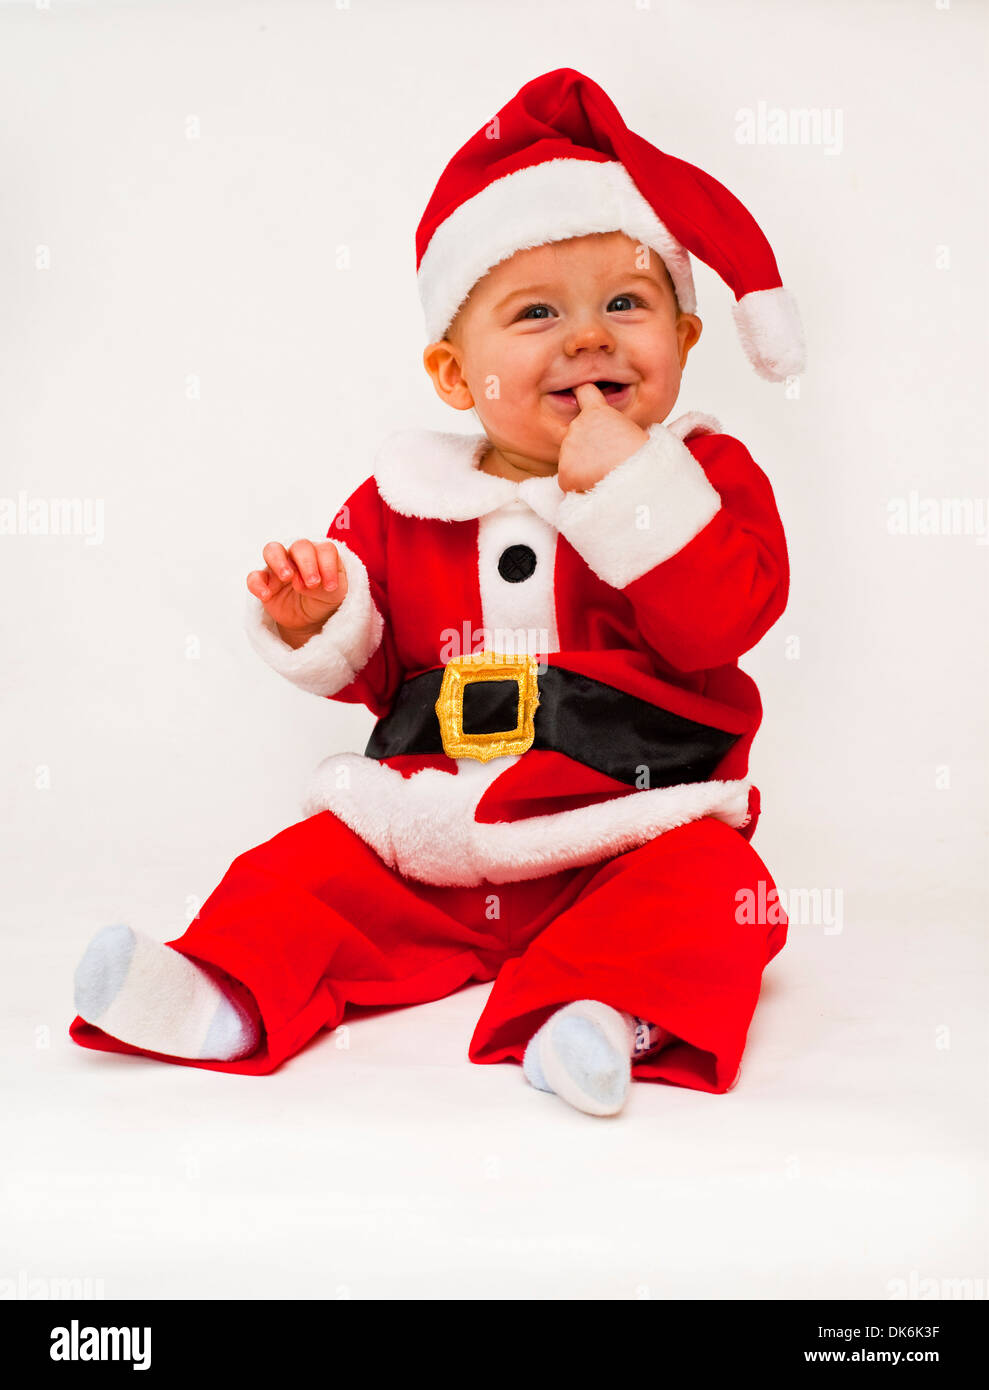 Christmas dress edmonton - Baby Boy In Santa Outfit Ready For Christmas